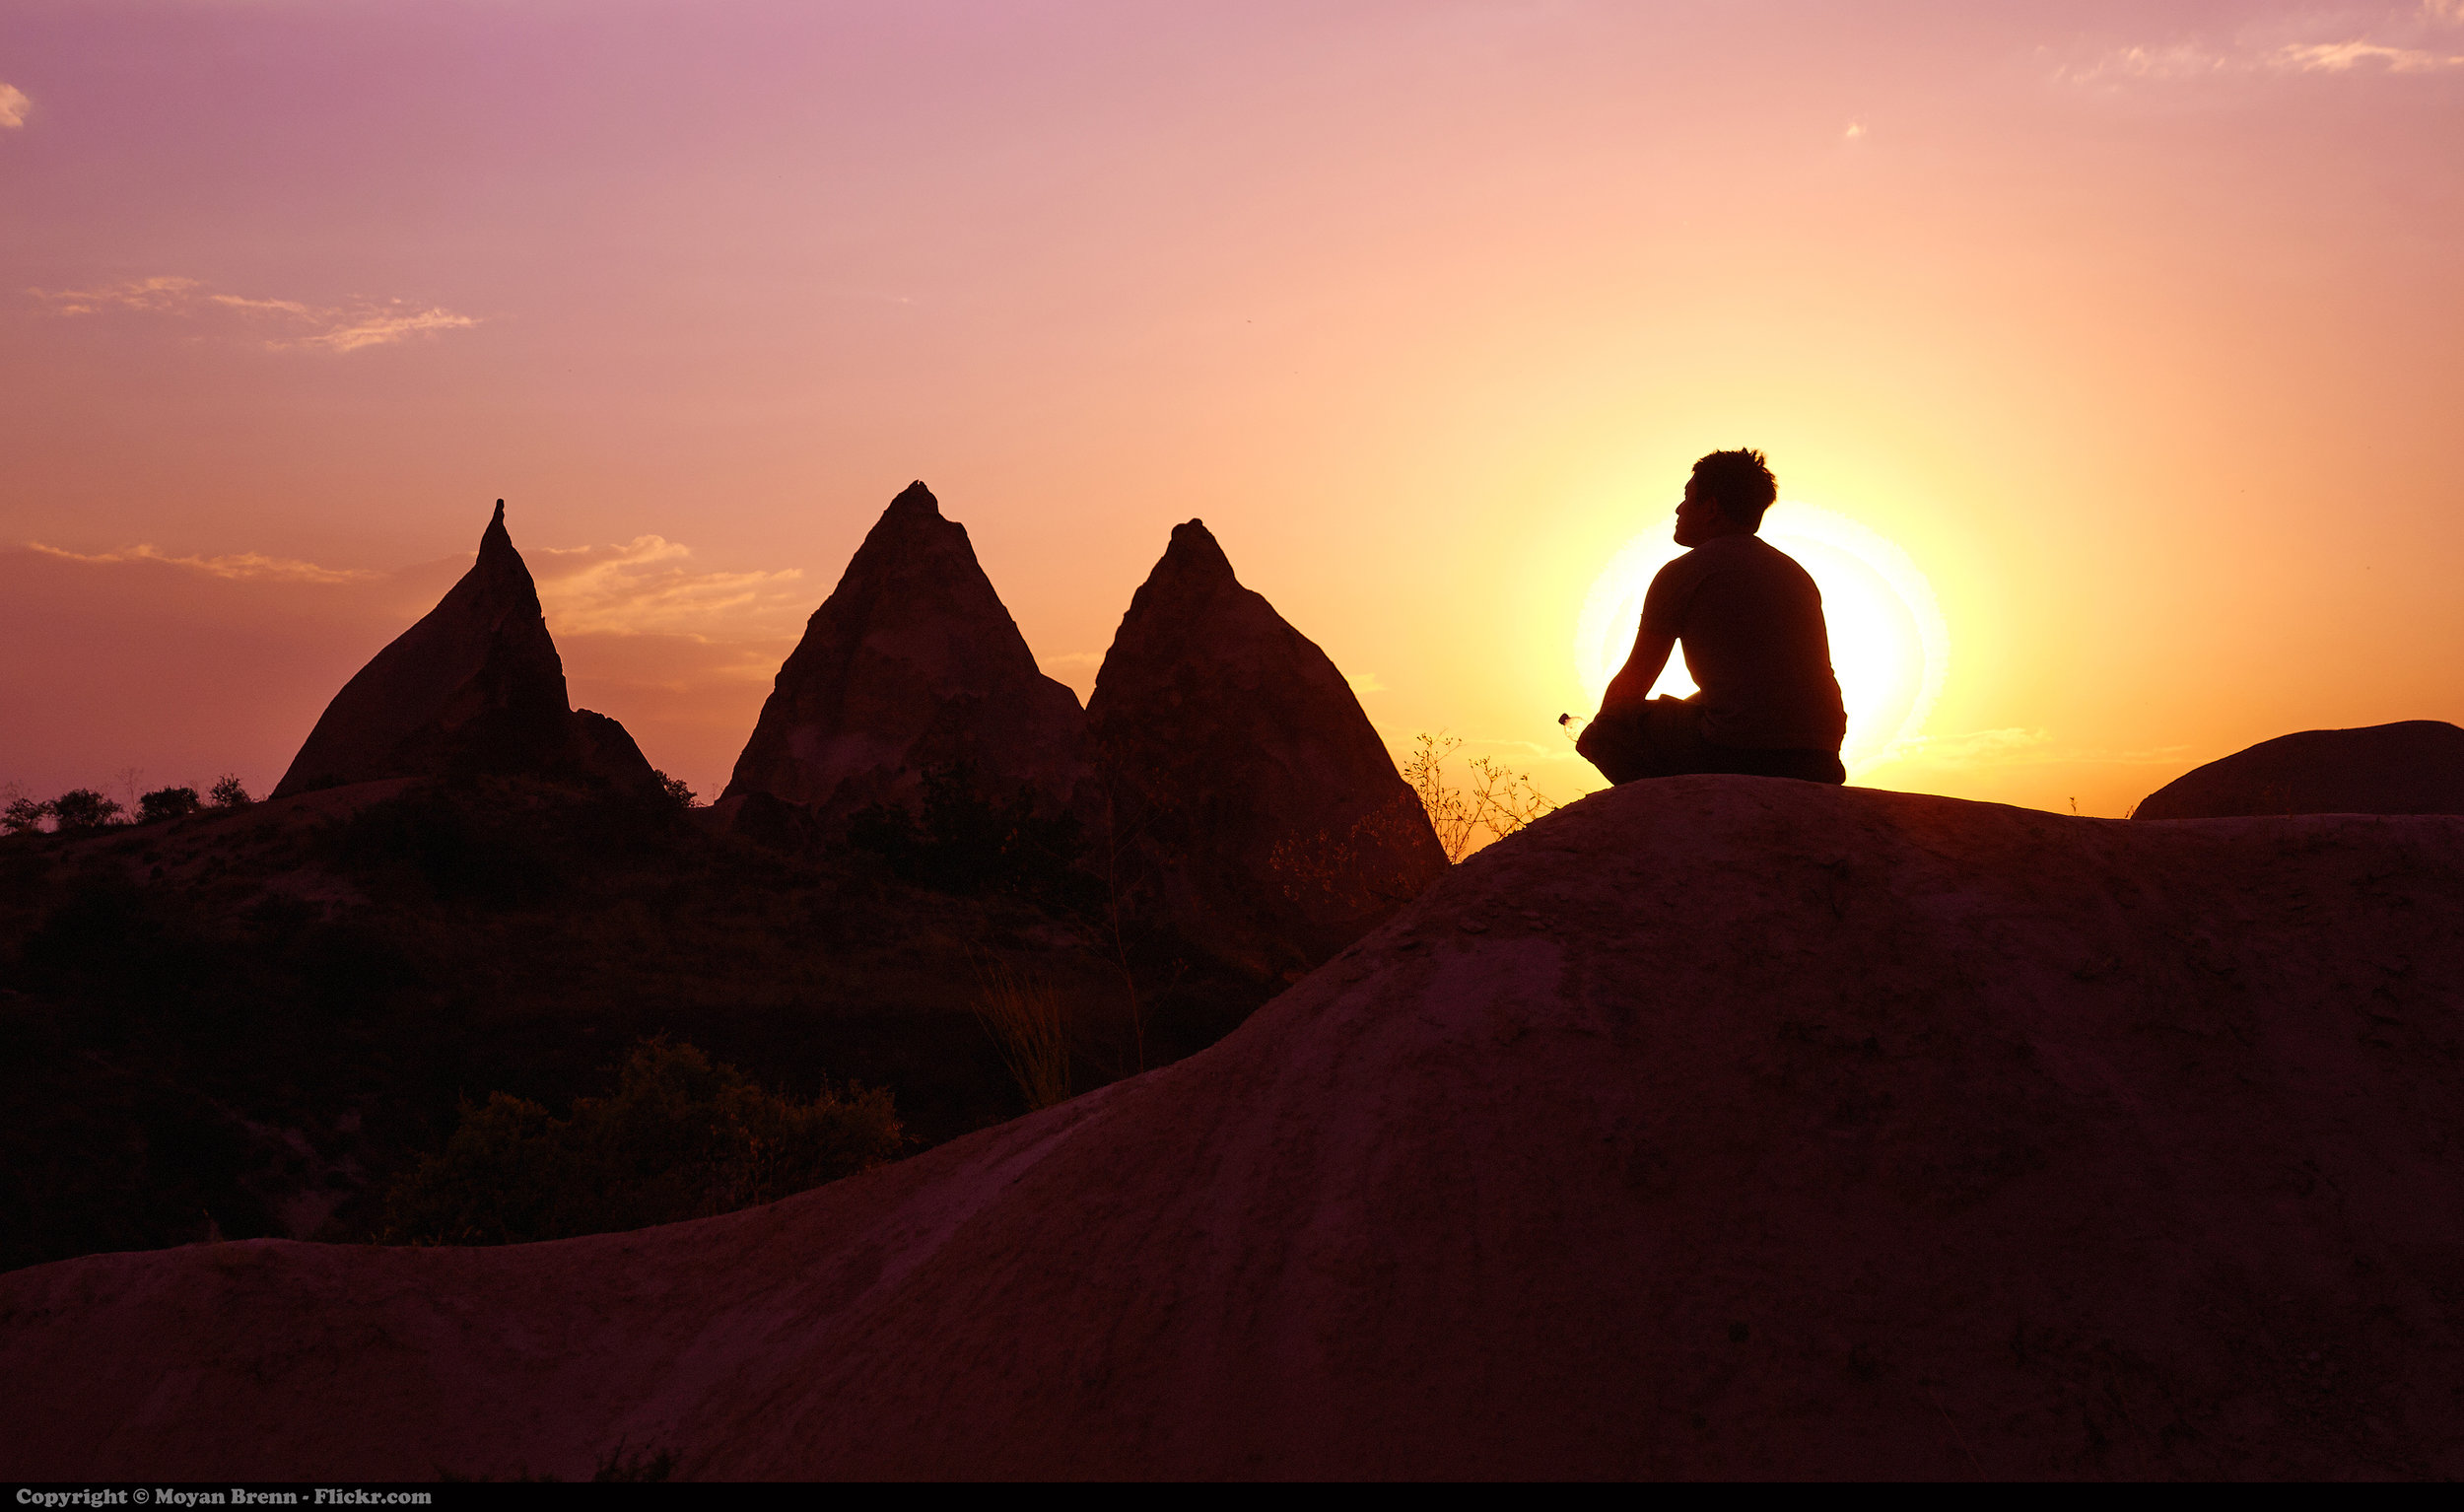 Man sits on red rocks and meditates